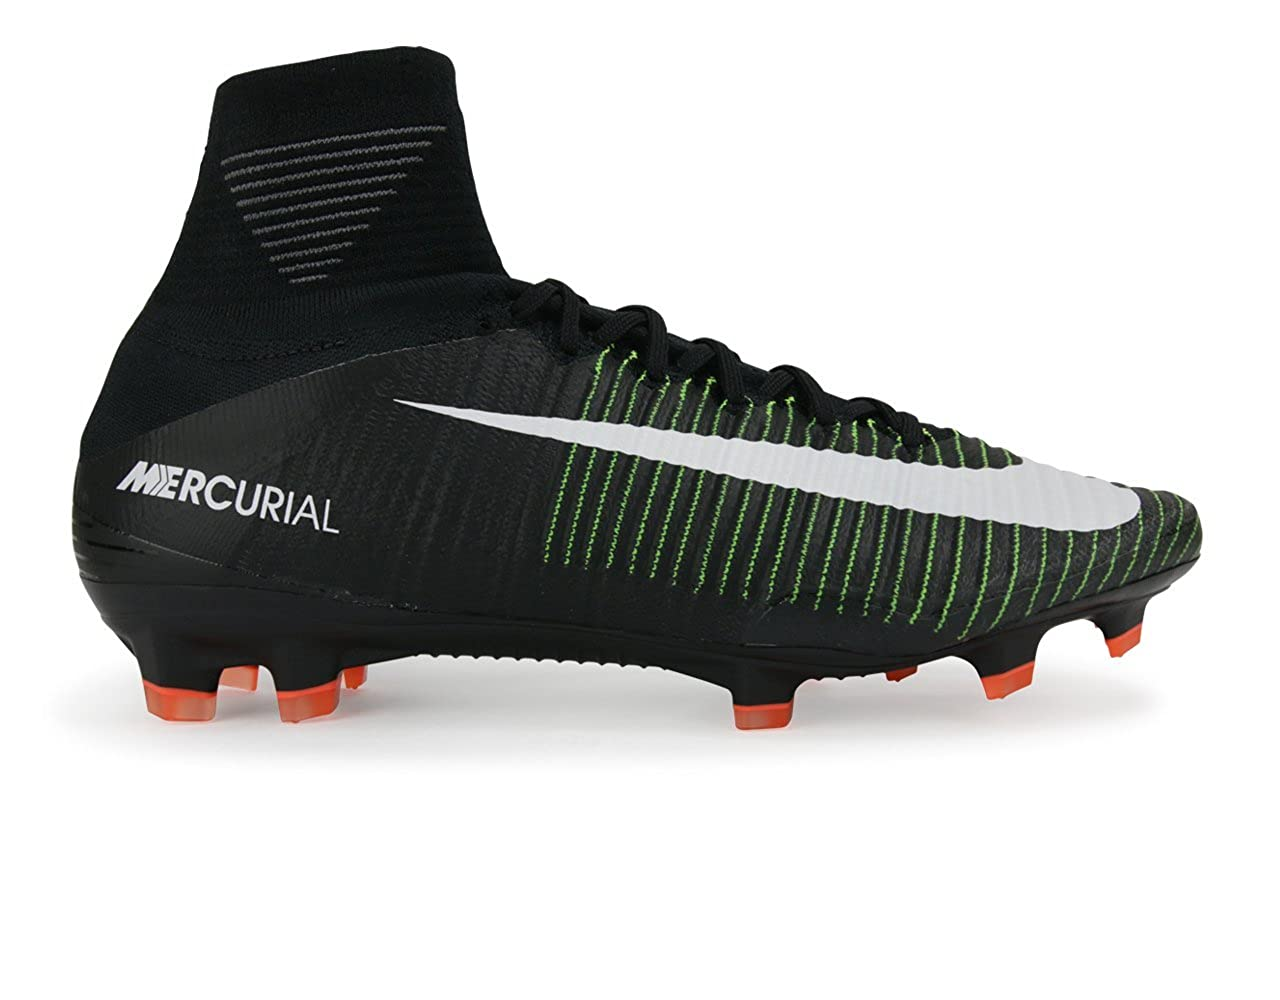 newest 8b6c8 92271 Amazon.com   Nike Men s Mercurial Superfly V FG Black White Electric Green  Soccer Shoes - 6.5A   Soccer